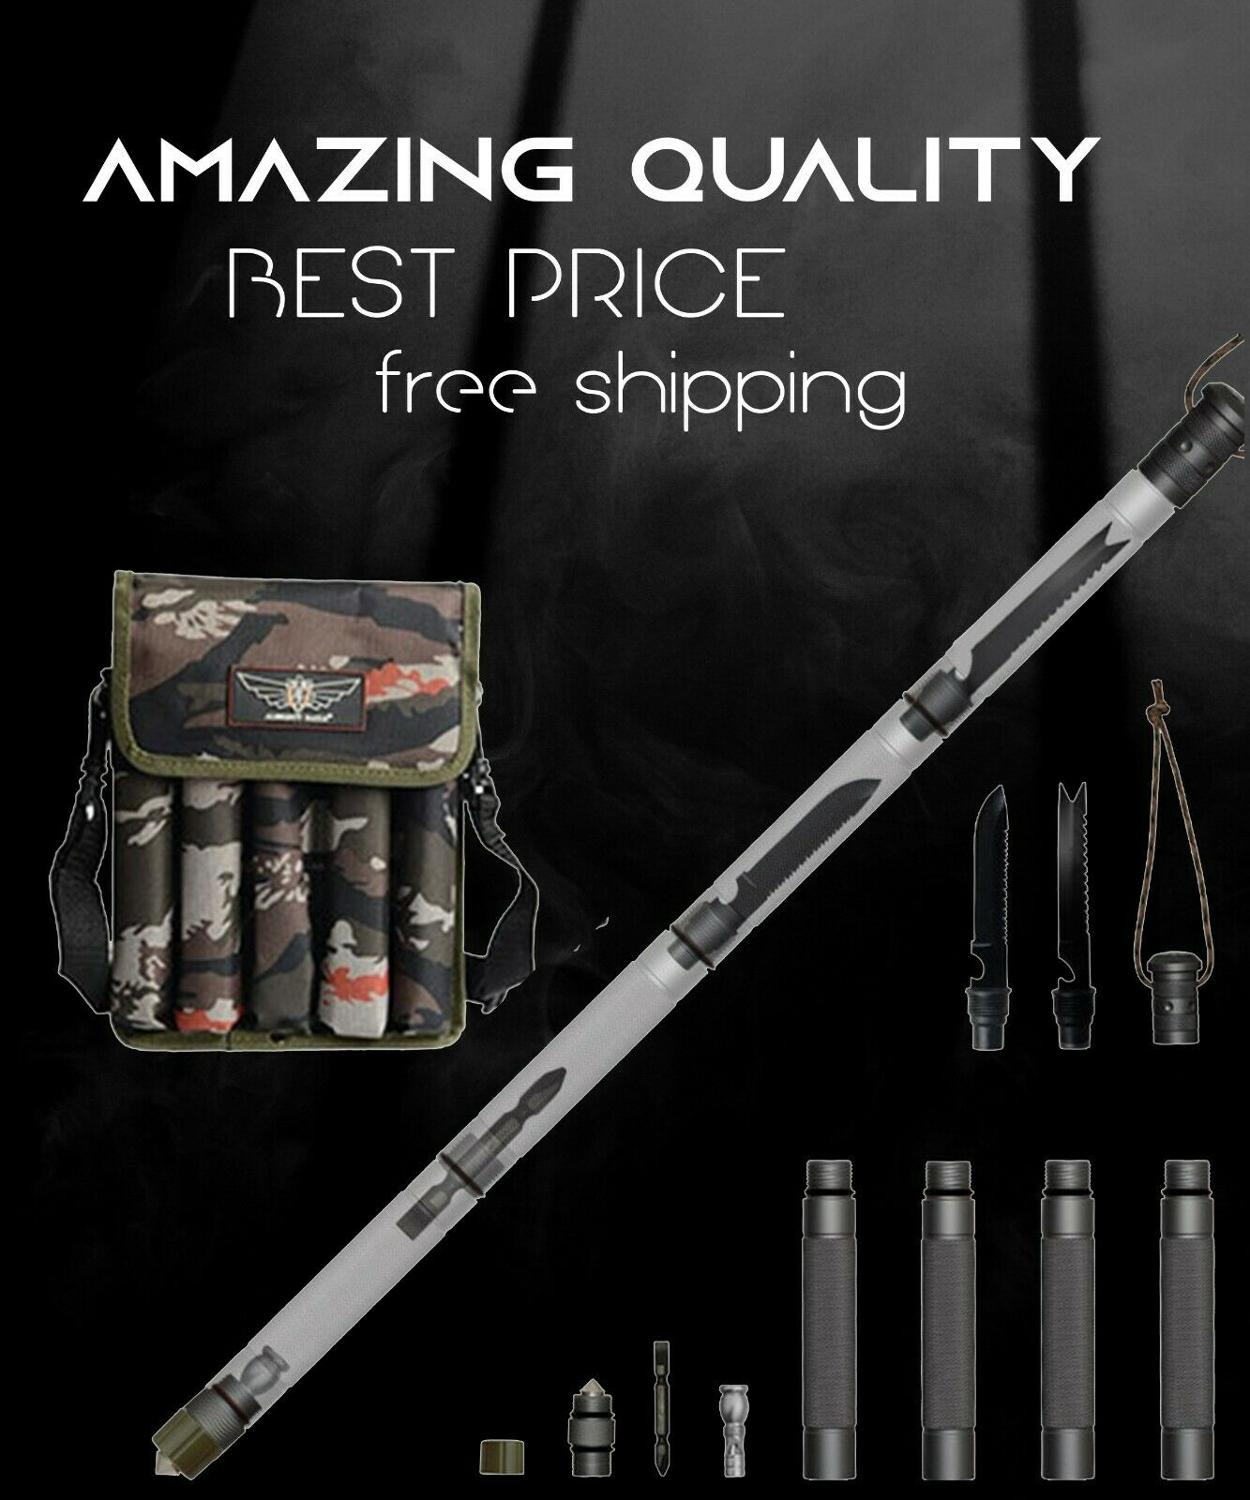 Trekking Poles Nordic Walking Stick Multifunction Outdoor Defense Tactical Alpenstock Hiking Camping Hunting Fishing Skiing Tool